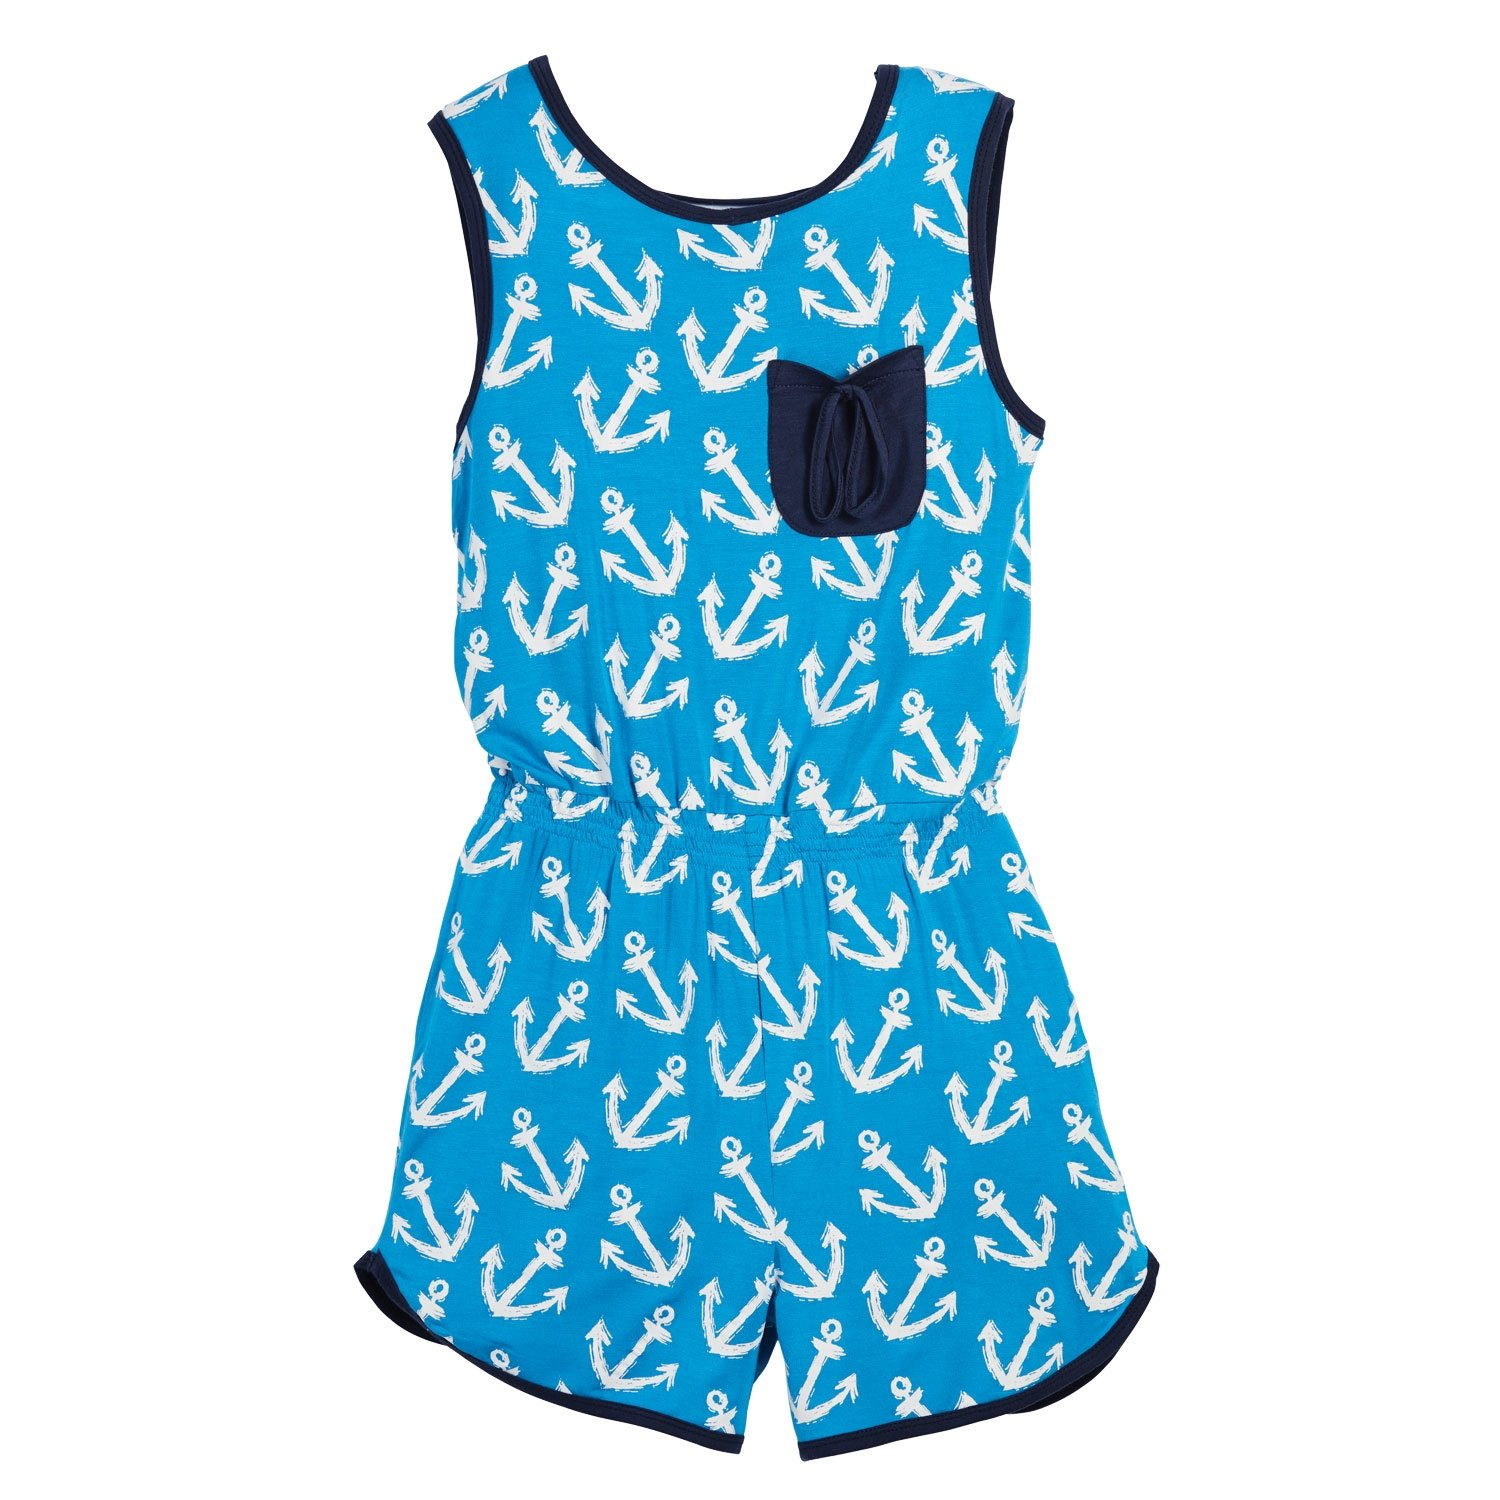 Beachcombers Girl's Tops Rayon/Spandex Anchor Romper Blue/White Small